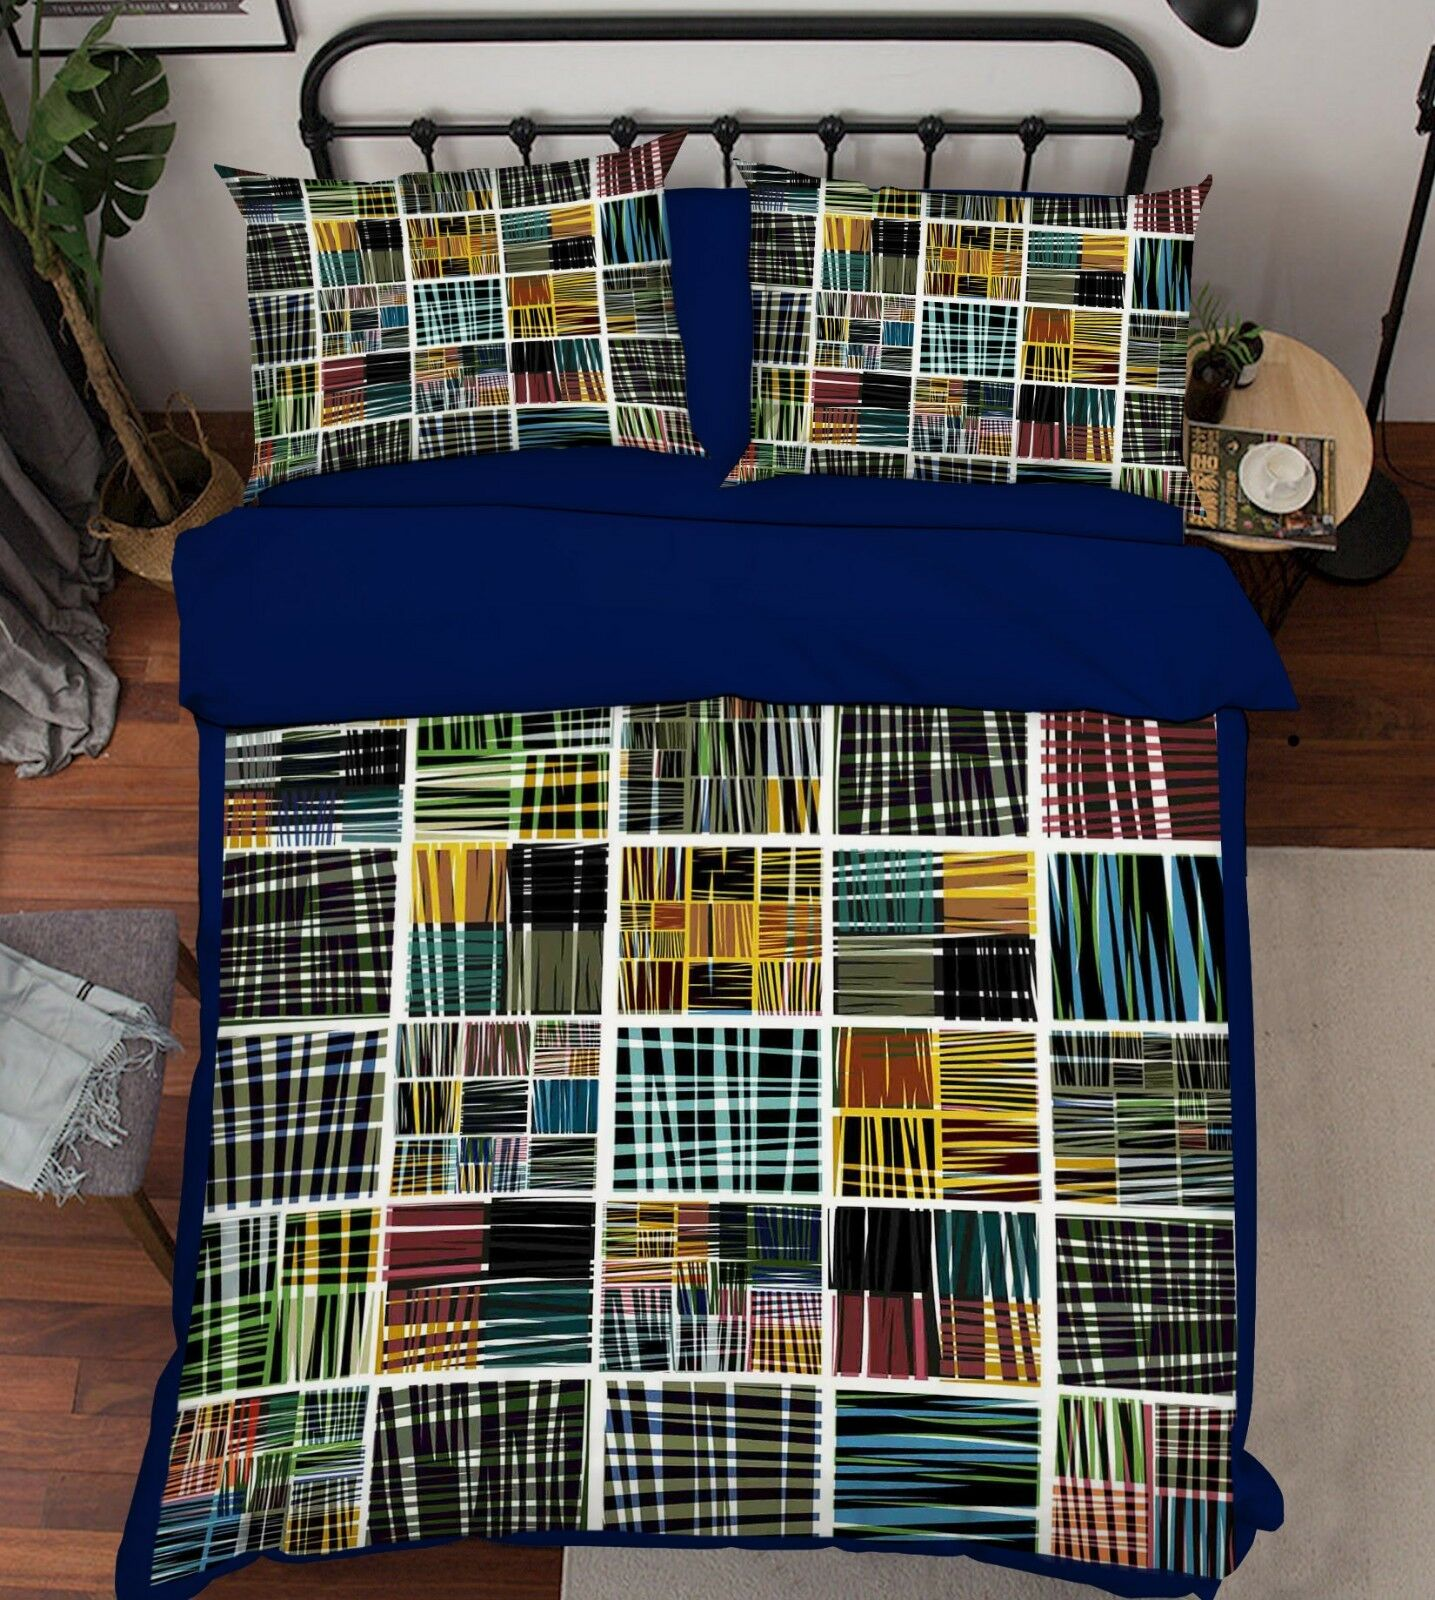 3D Painted Square 78 Bed Pillowcases Quilt Duvet Cover Set Single Queen AU Carly